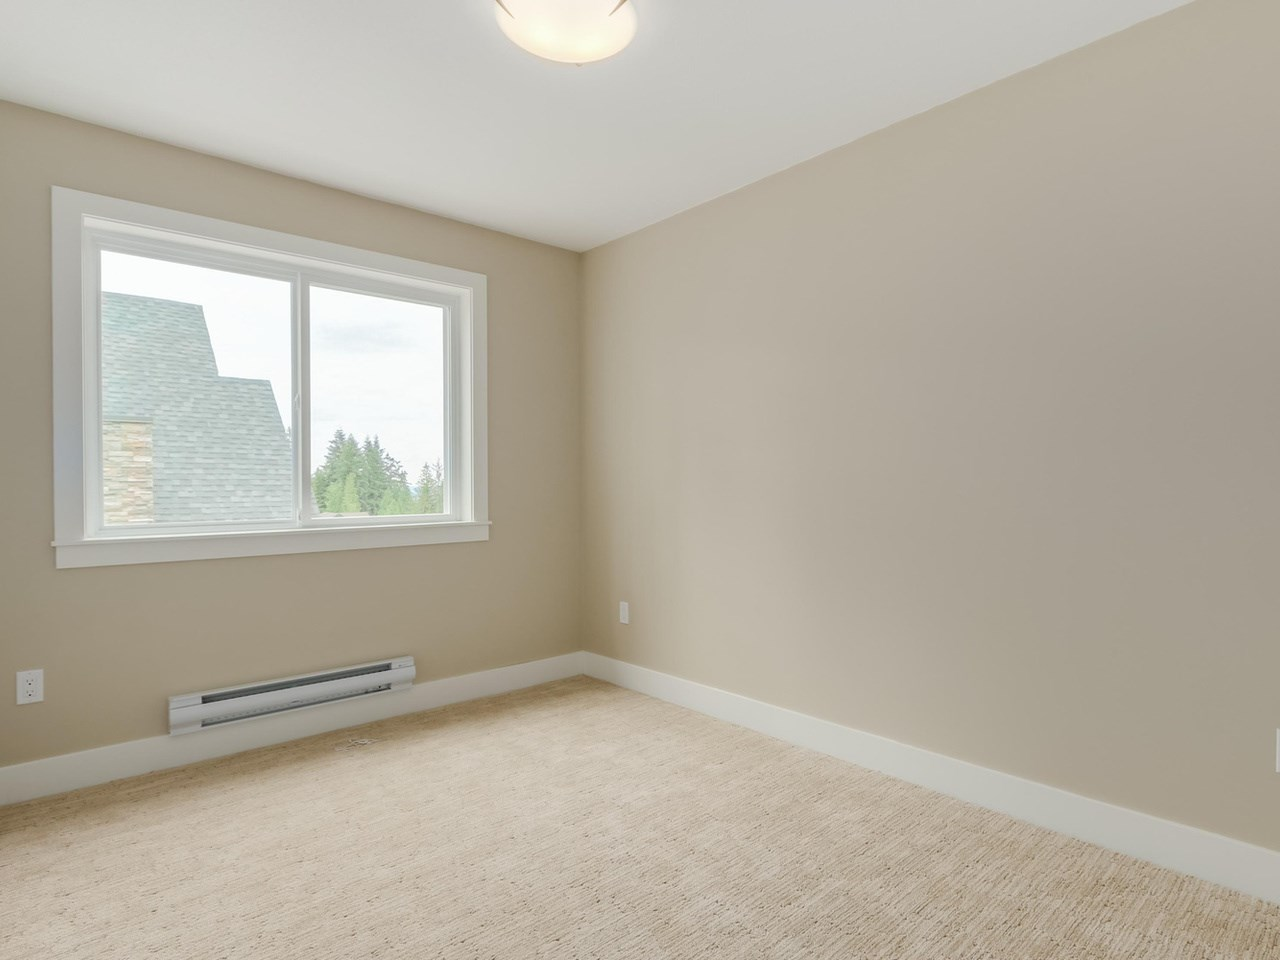 "Photo 8: 303 1405 DAYTON Street in Coquitlam: Burke Mountain Townhouse for sale in ""ERICA"" : MLS® # R2119298"